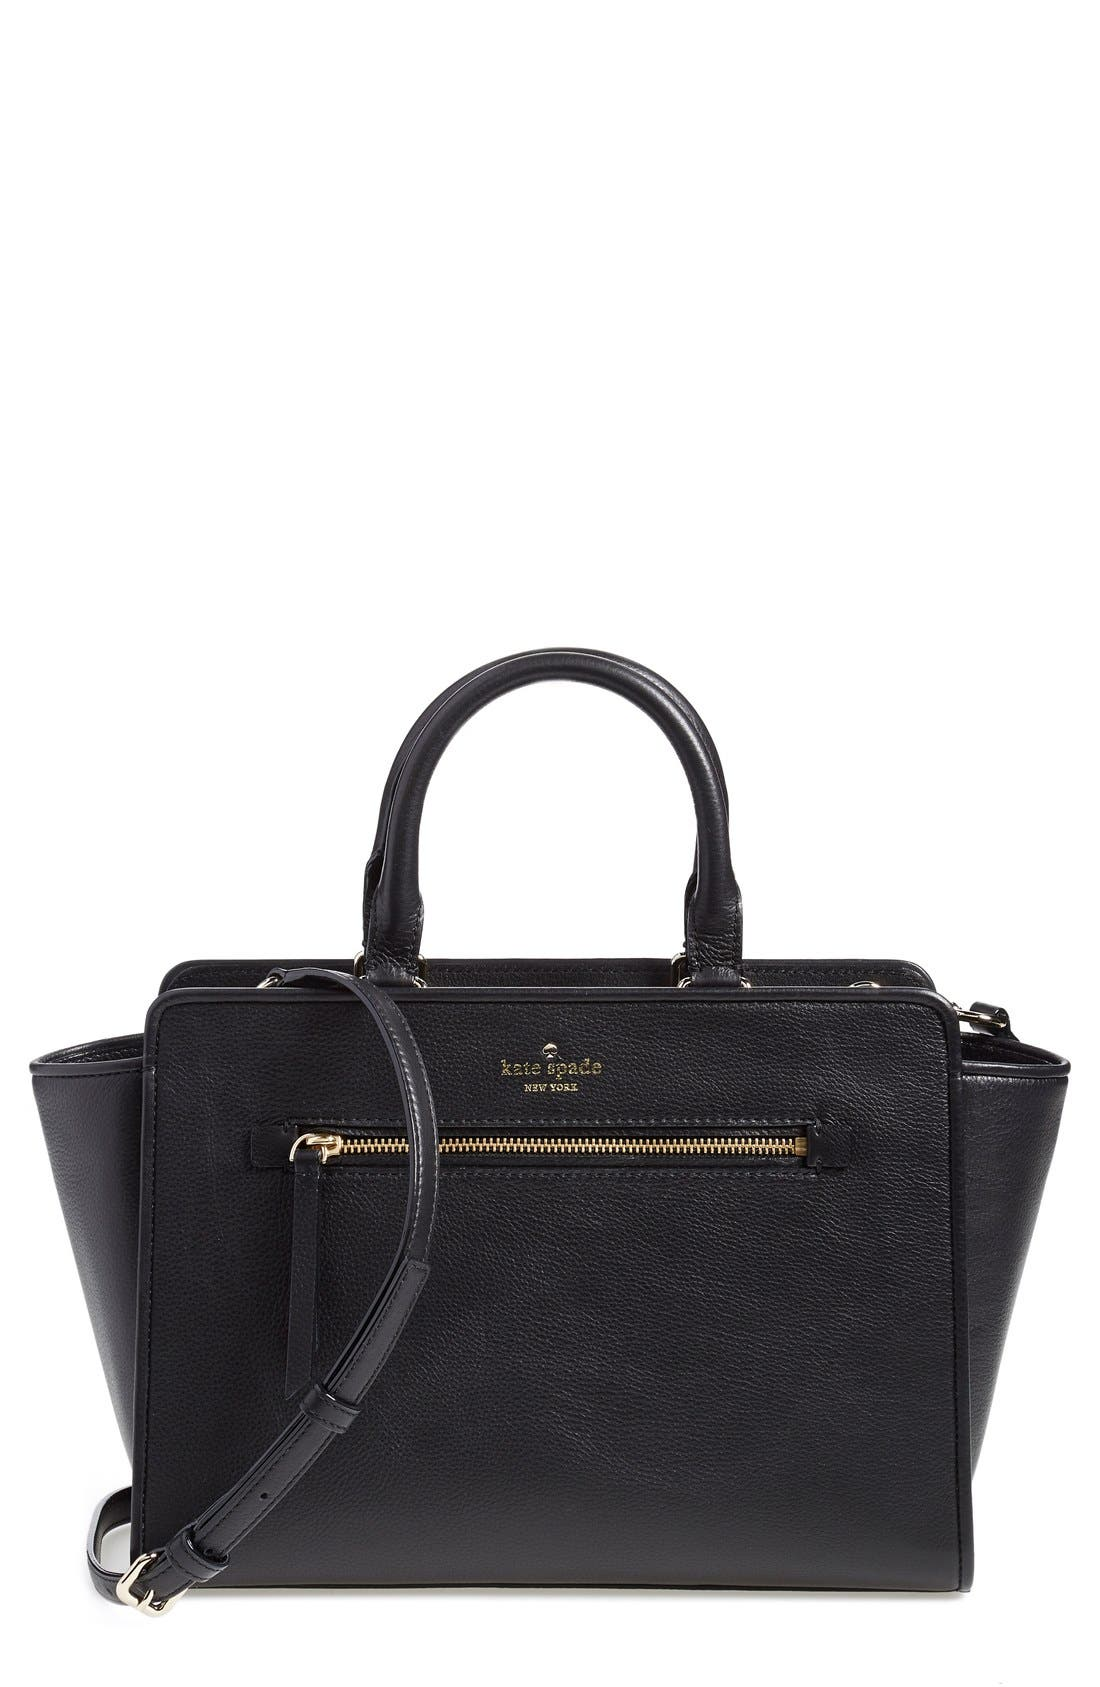 KATE SPADE NEW YORK,                             'north court - coralline' pebbled leather satchel,                             Main thumbnail 1, color,                             001